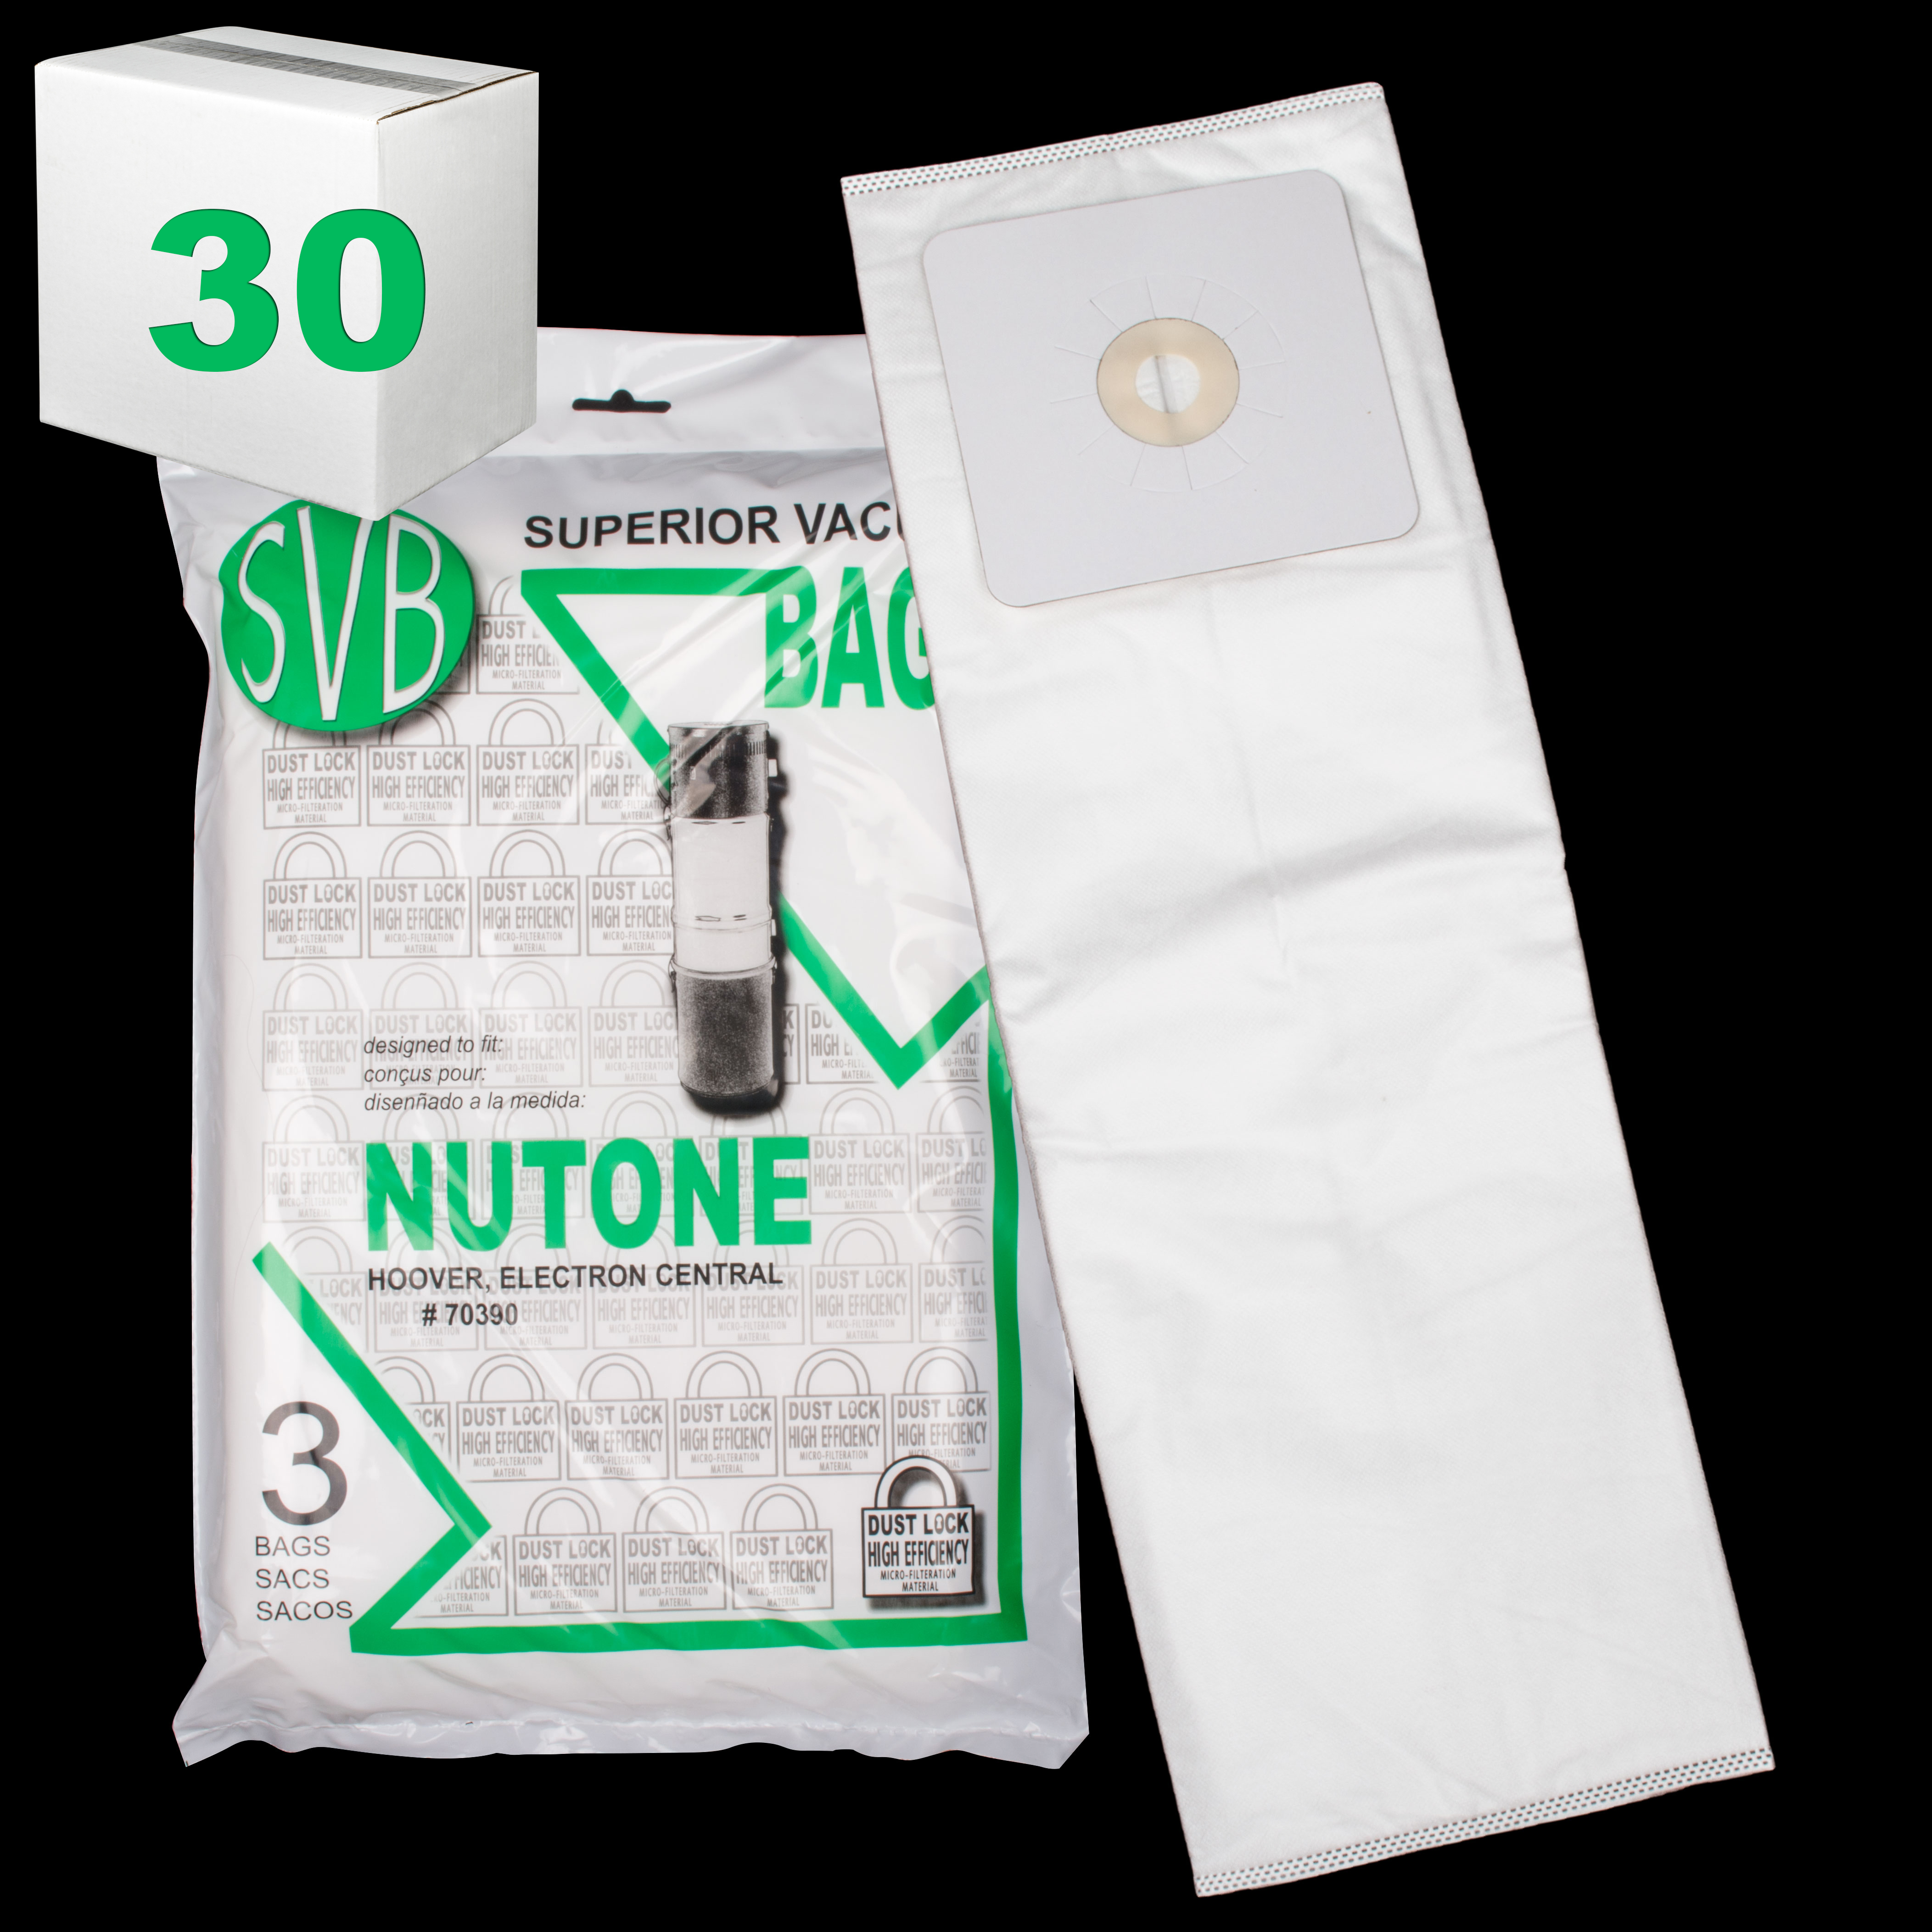 Electron Sc190 Sc300 Central Dustlock Bags Best Quality 3 Pack Multi Ply Hoover Case Of 30